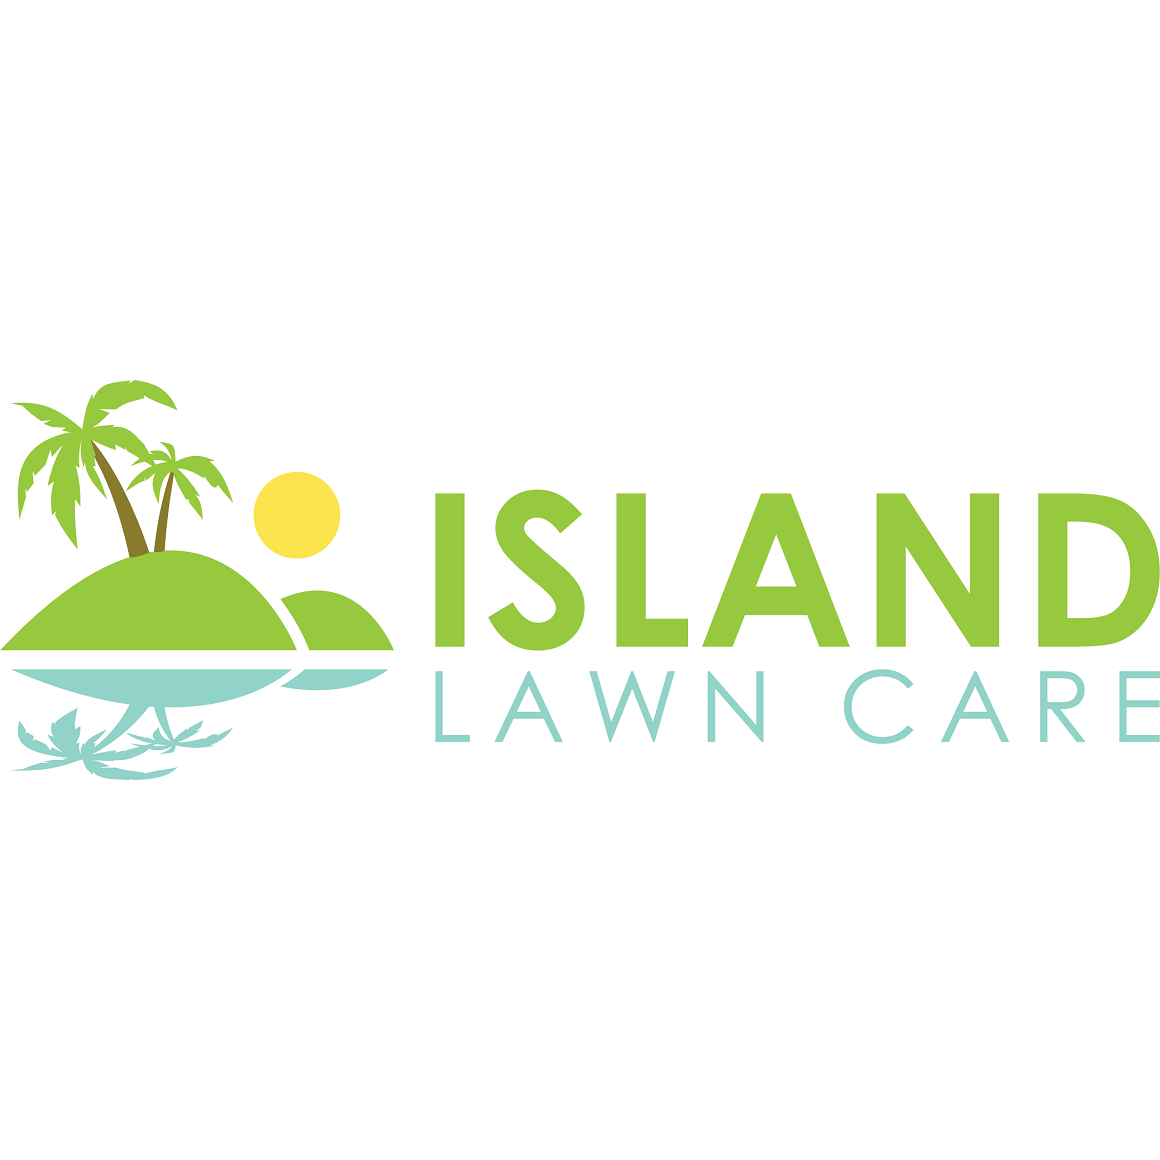 Island Lawn Care - Dunwoody, GA - Lawn Care & Grounds Maintenance